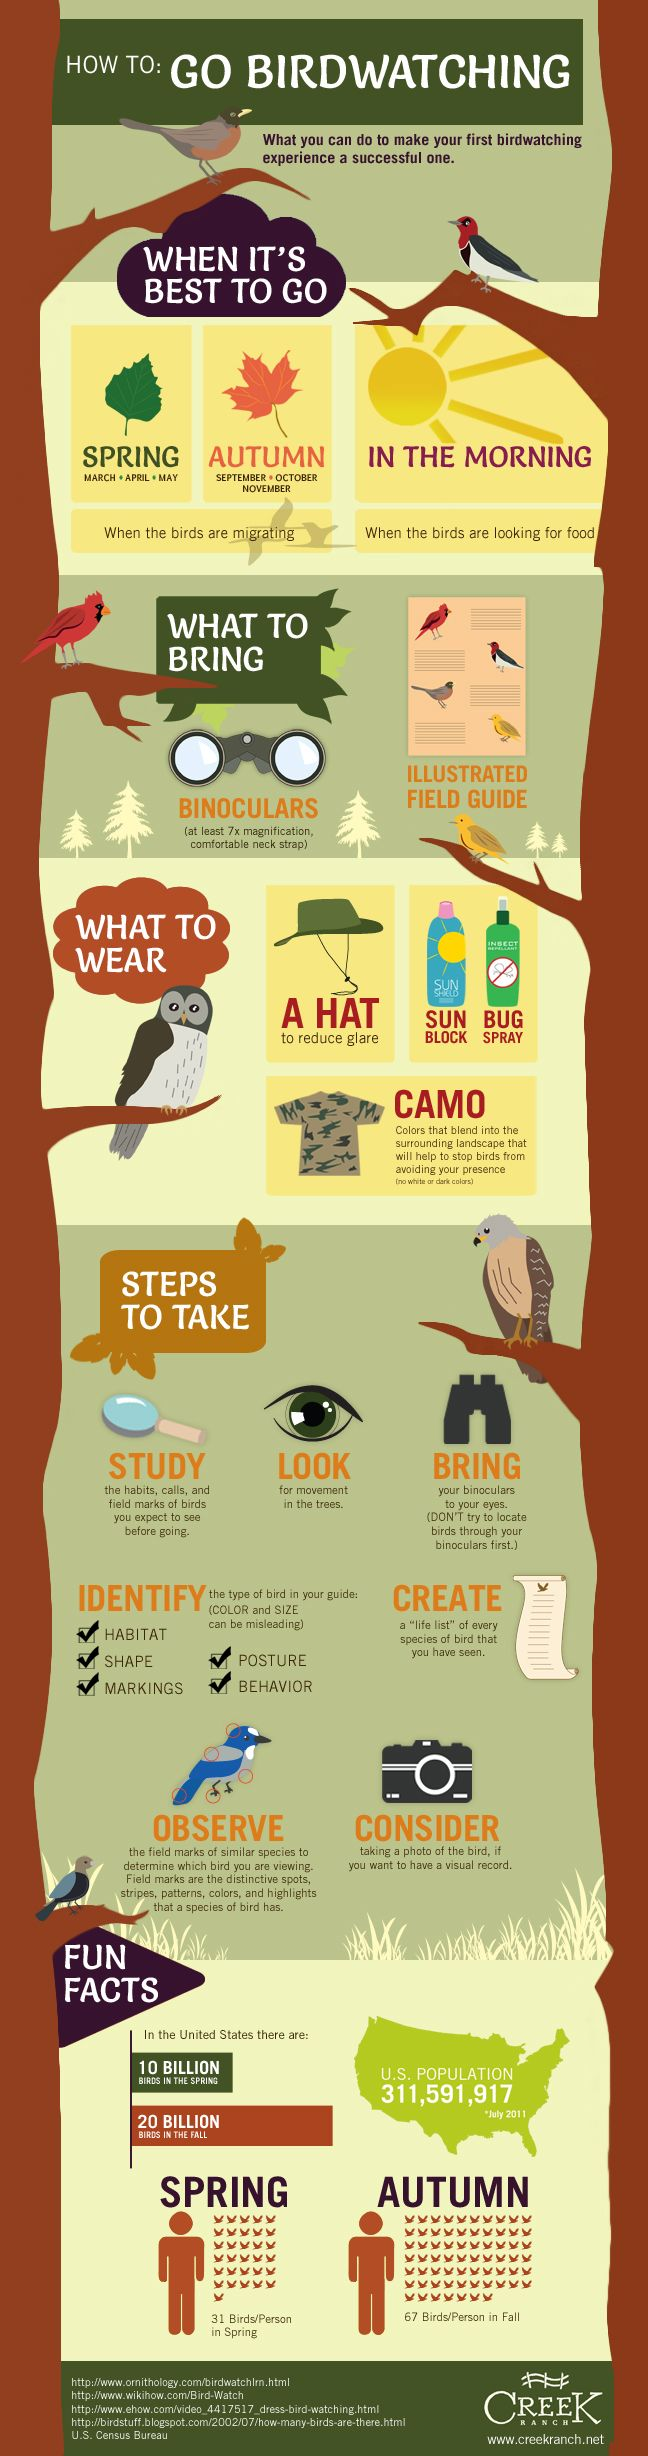 A complete graphic guide on how to go birdwatching! What a great activity to do on a byway!